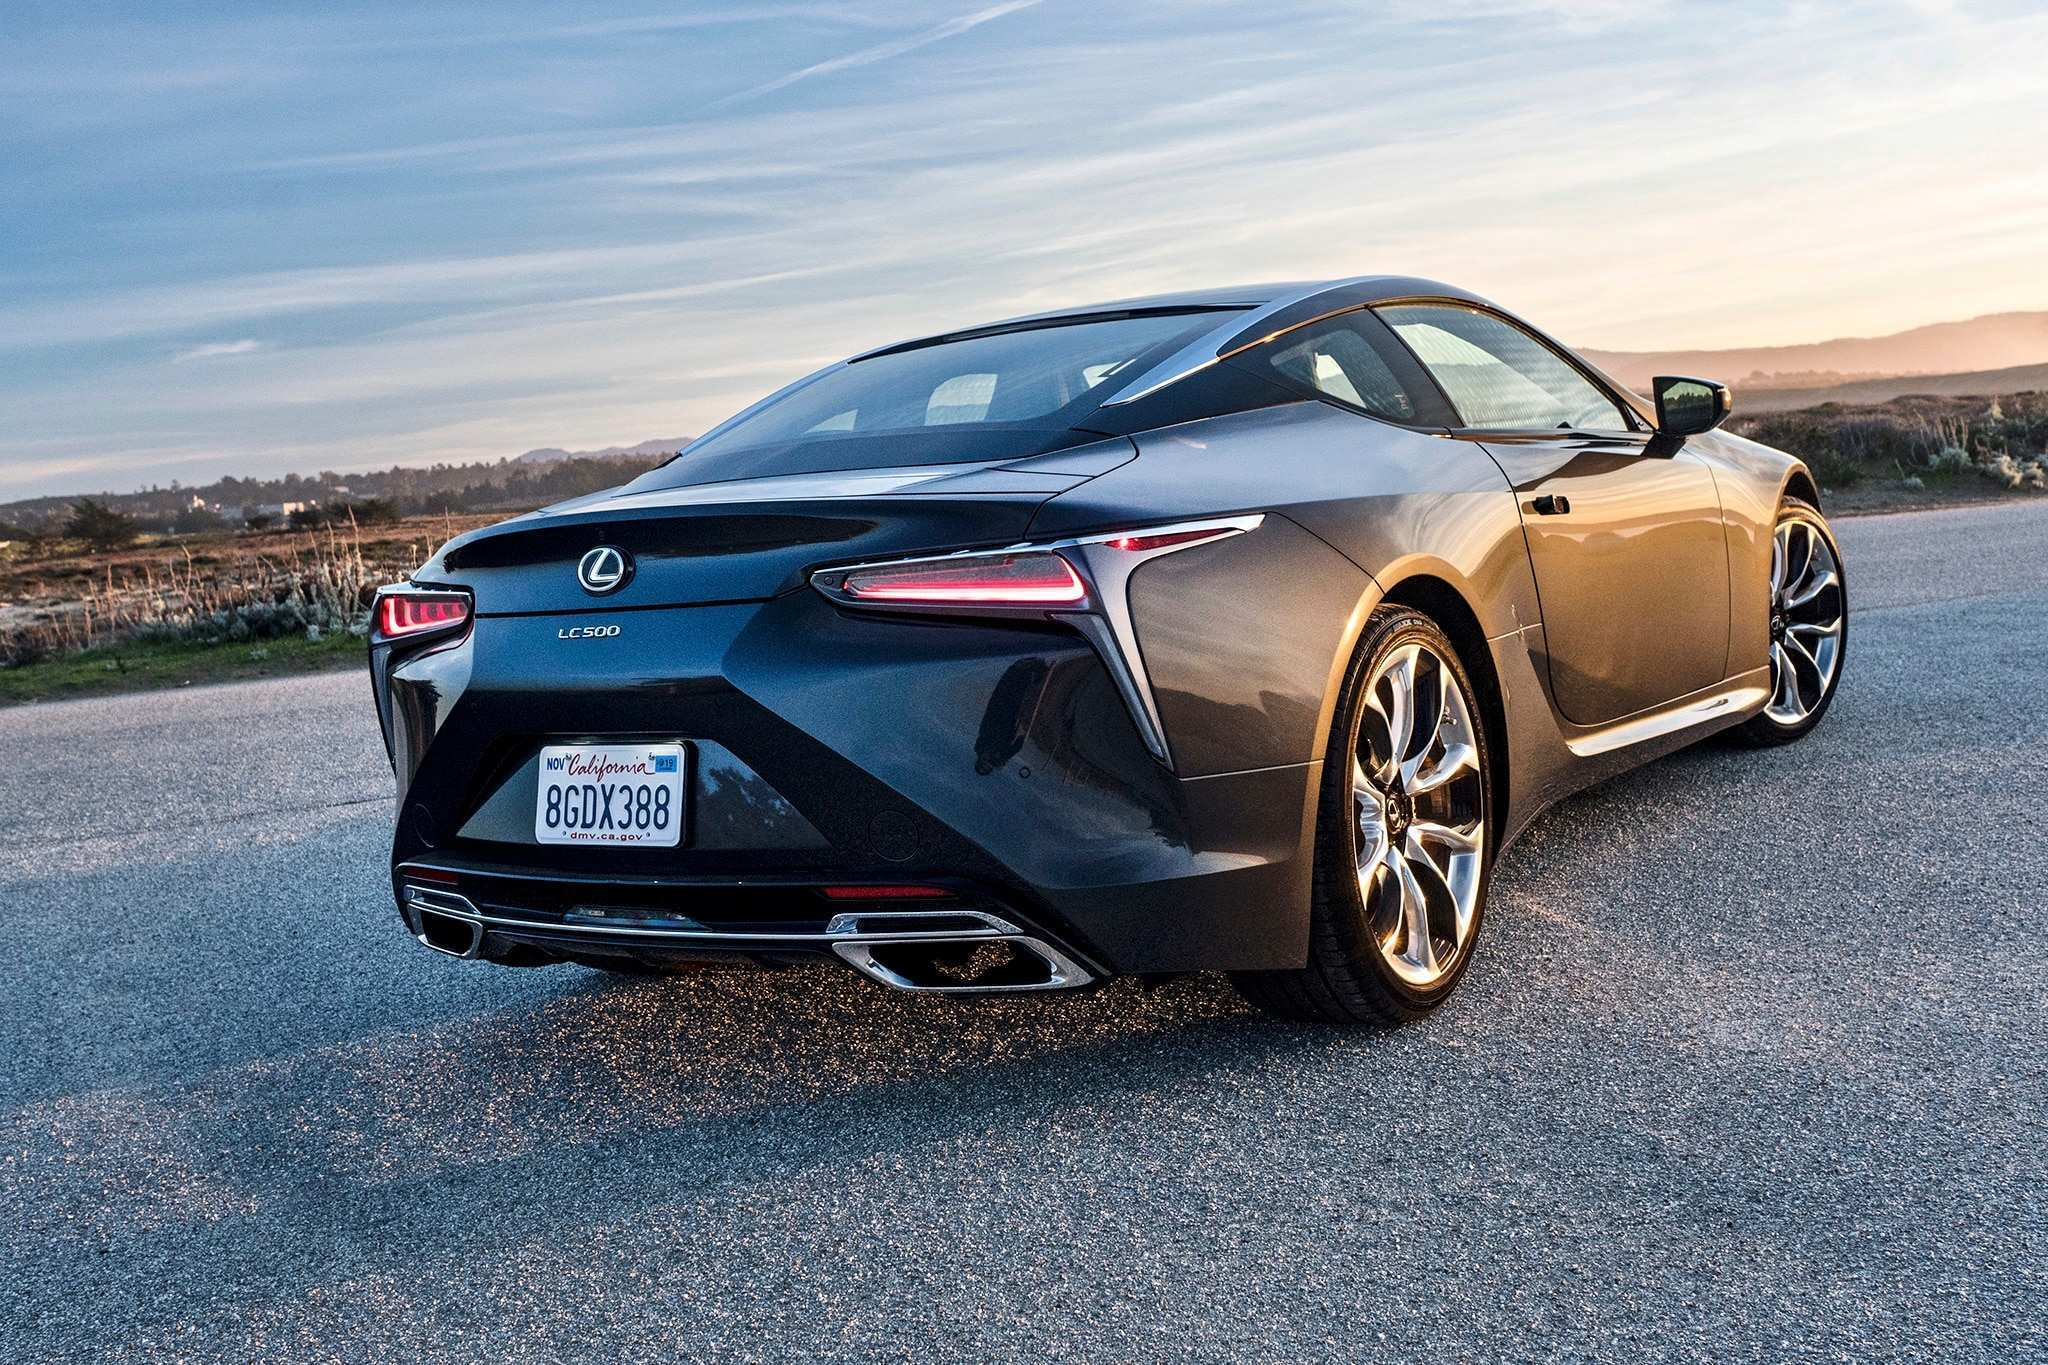 44 All New 2019 Lexus Lc F Research New